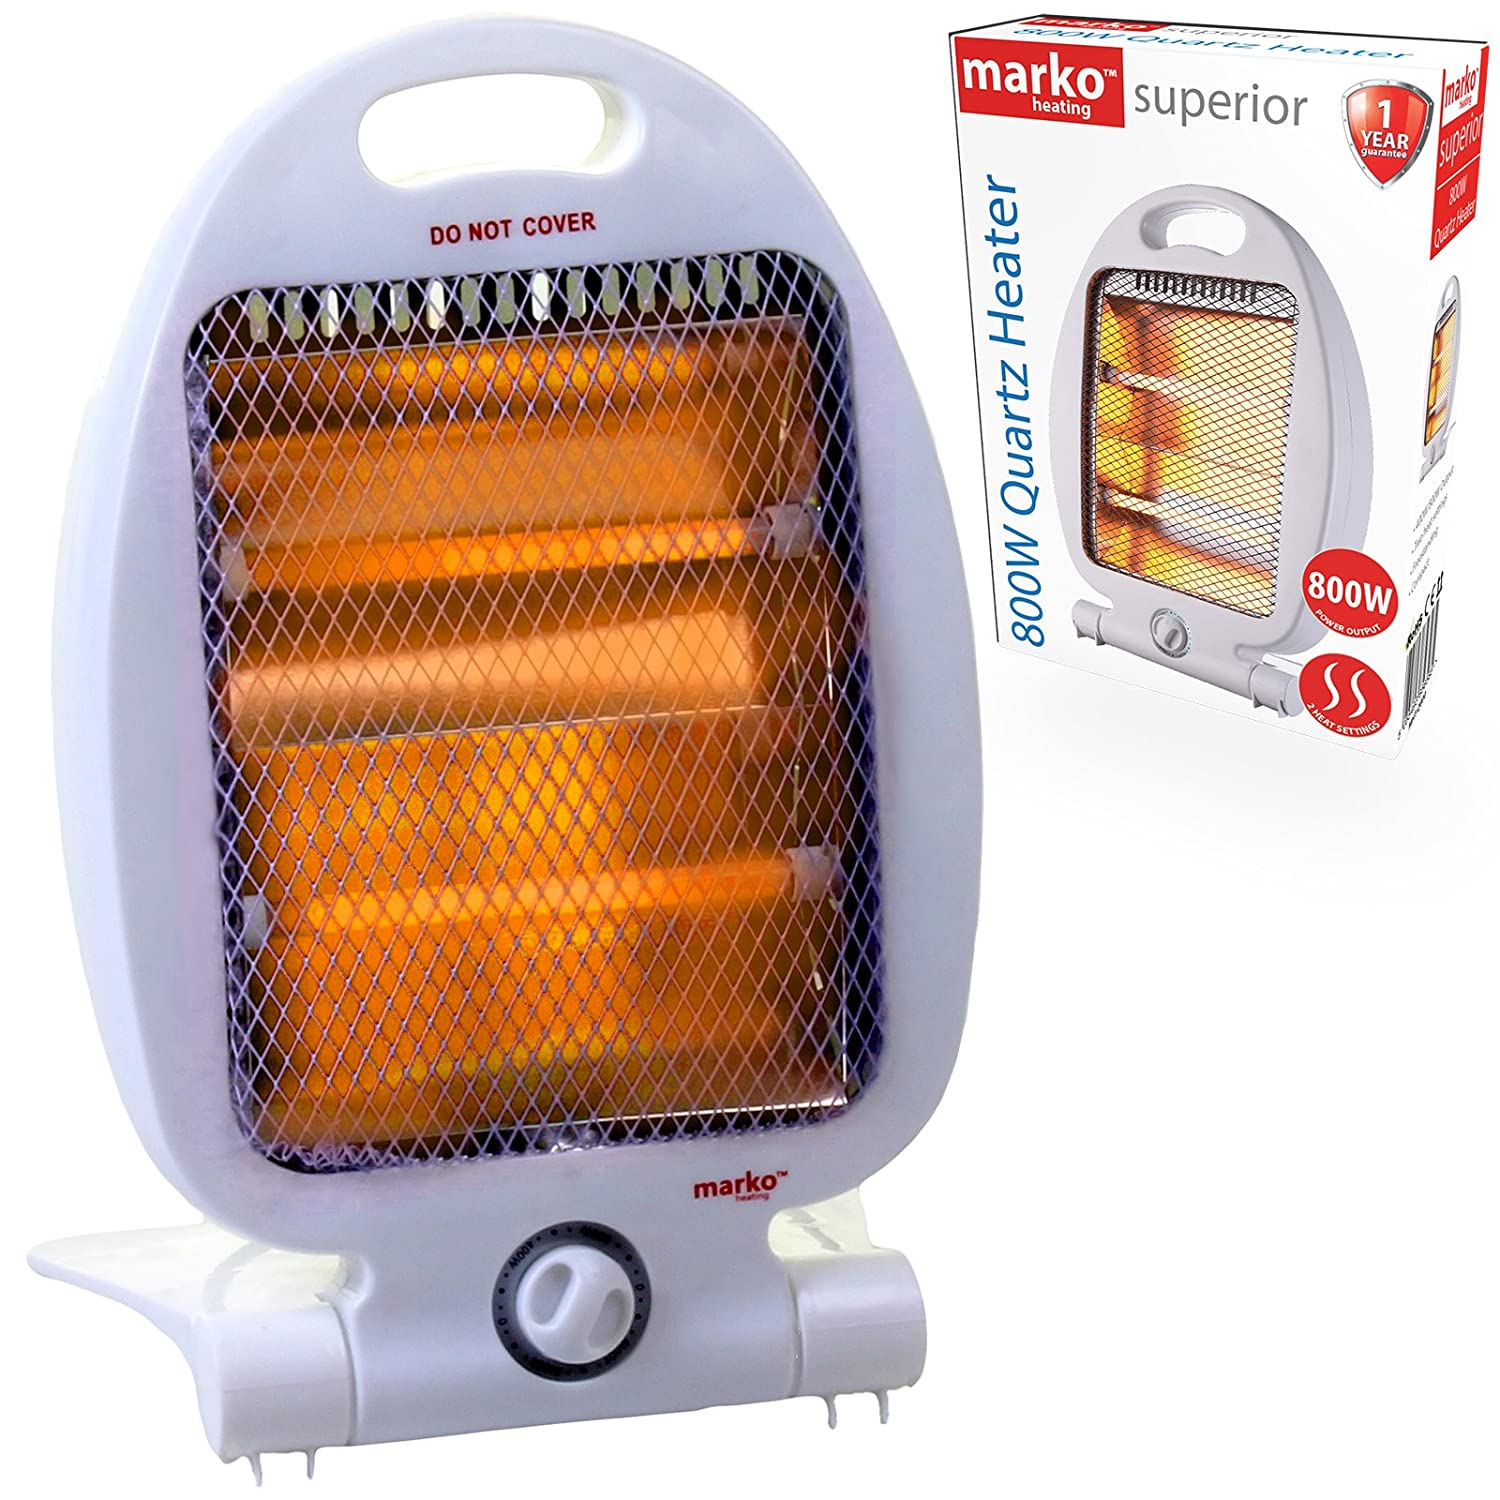 Electric Portable 400W/800W Quartz Halogen Heater